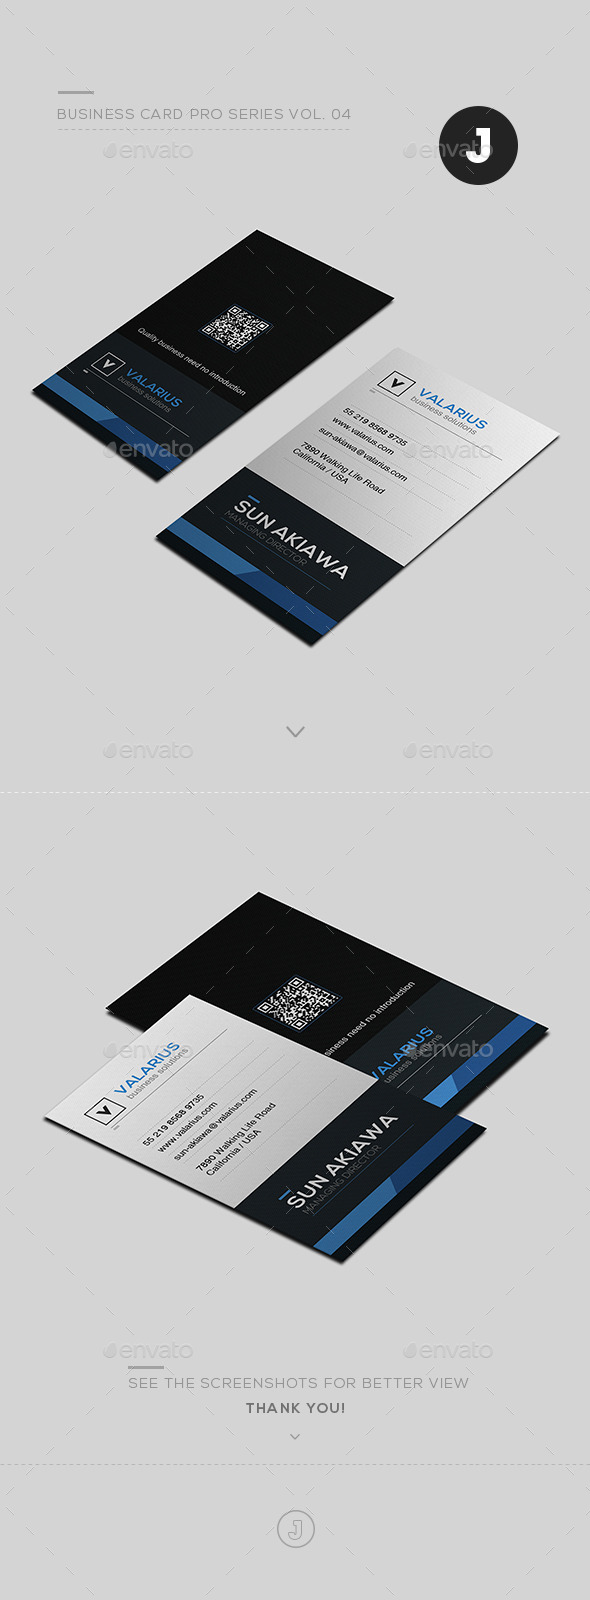 Business Card Pro Series Vol. 04 - Creative Business Cards